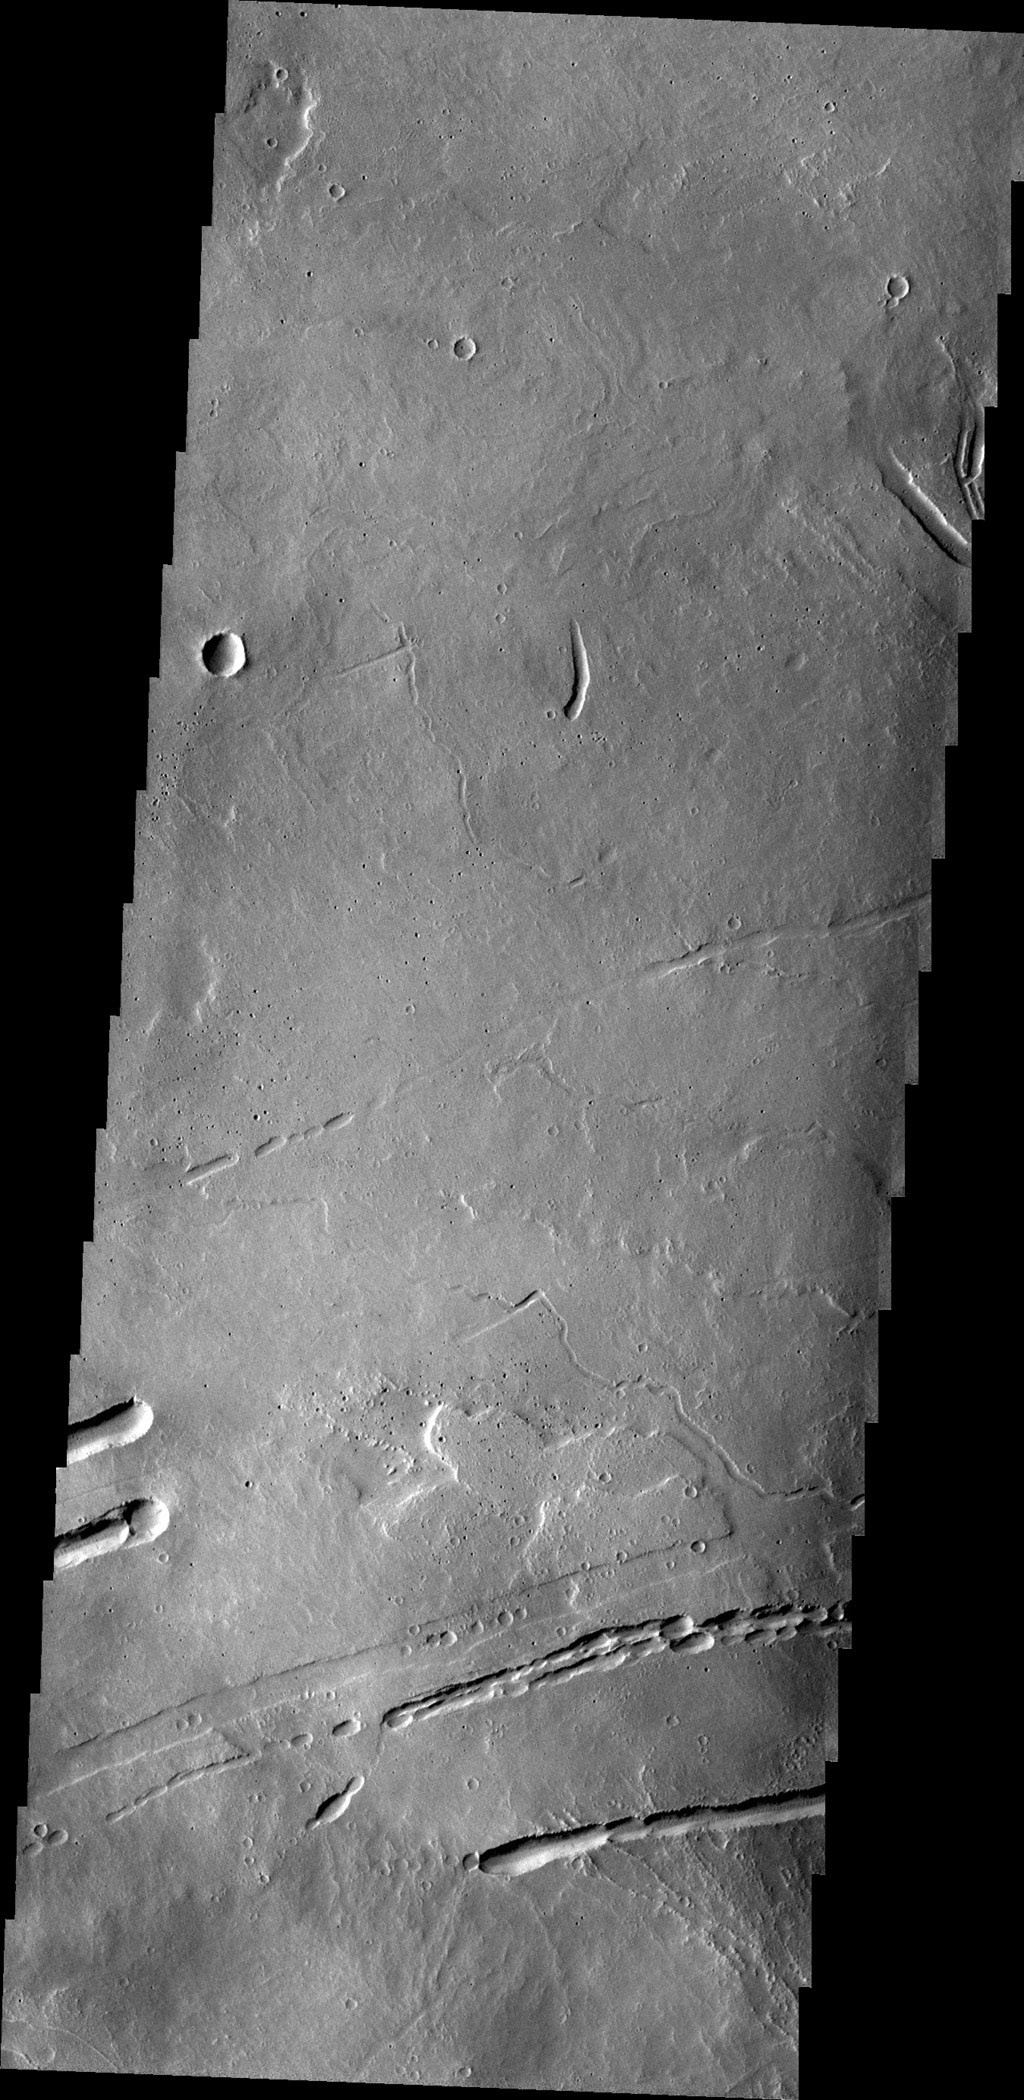 This image captured by NASA's 2001 Mars Odyssey spacecraft shows part of the lava field just off the northern flank of Ascraeus Mons. The depressions are collapse features most likely related to lava tubes below the surface.